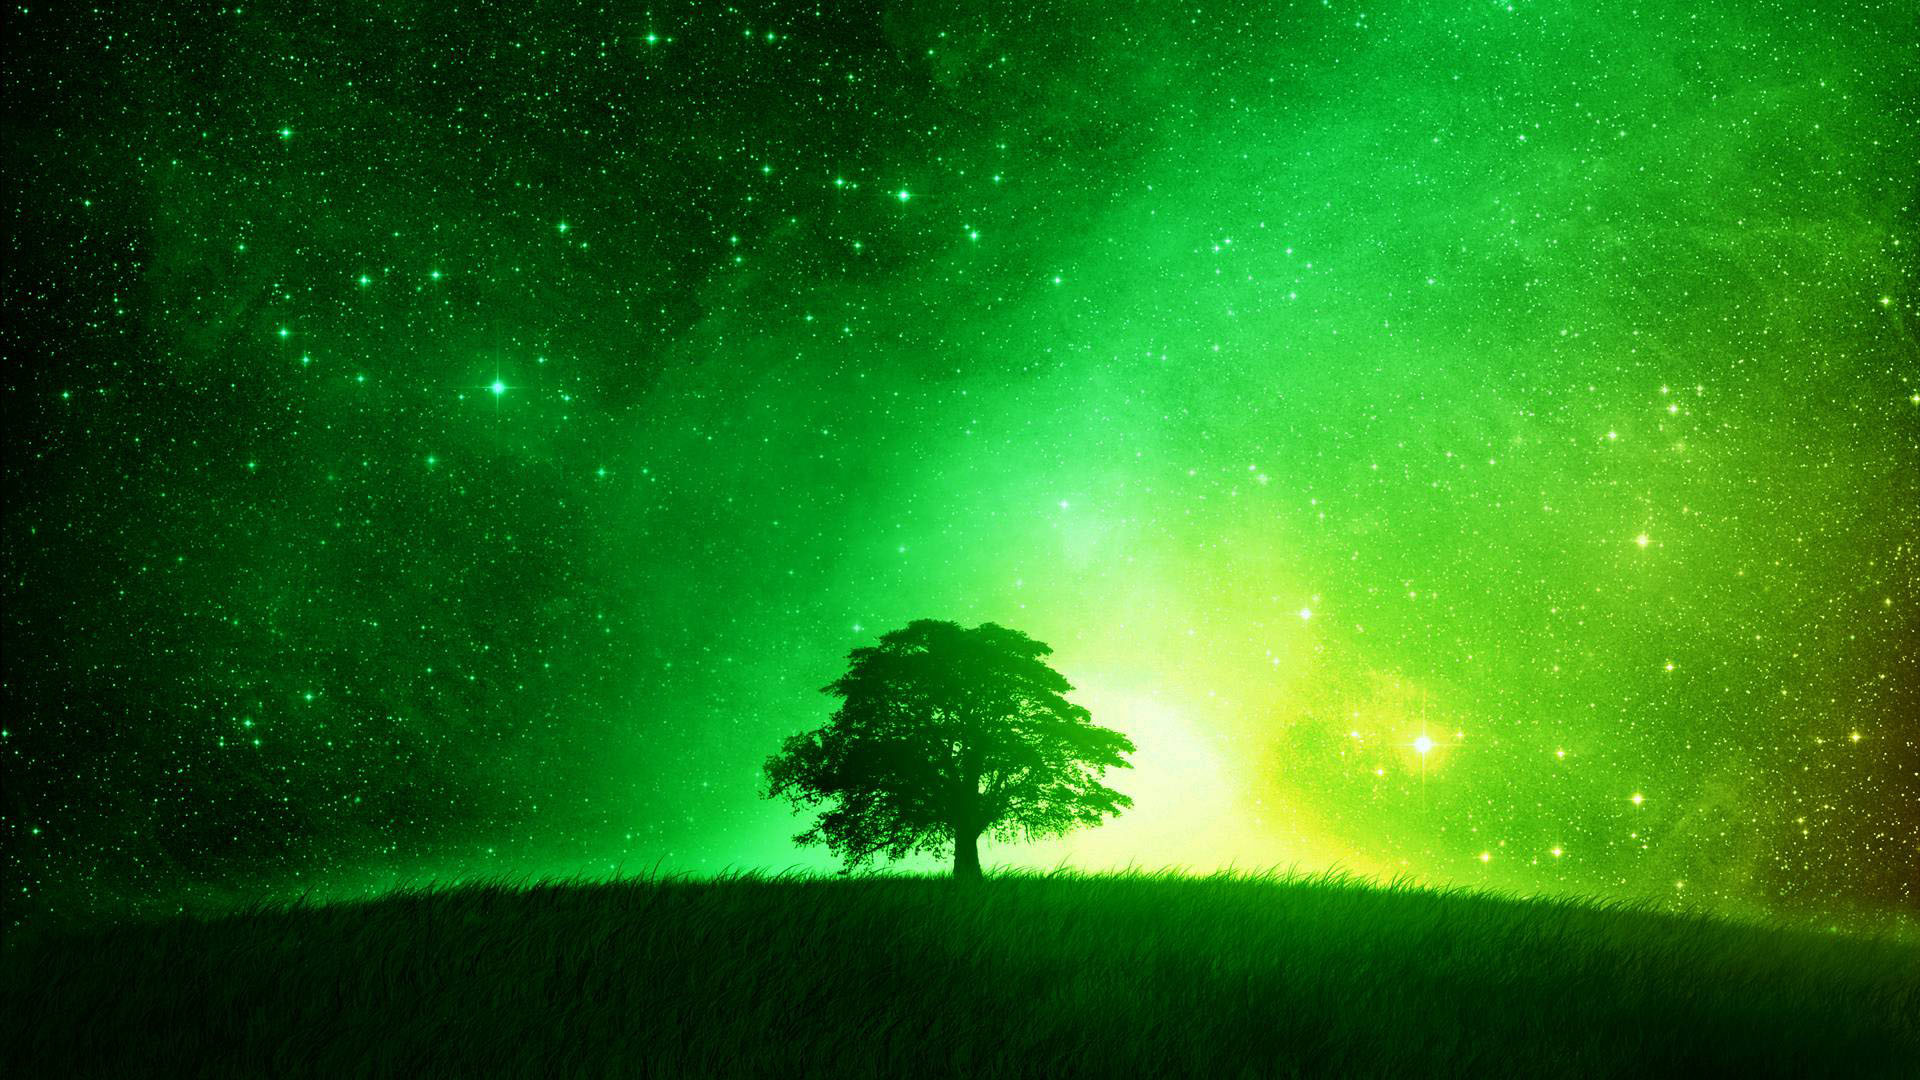 Green Space Wallpaper 67 Images